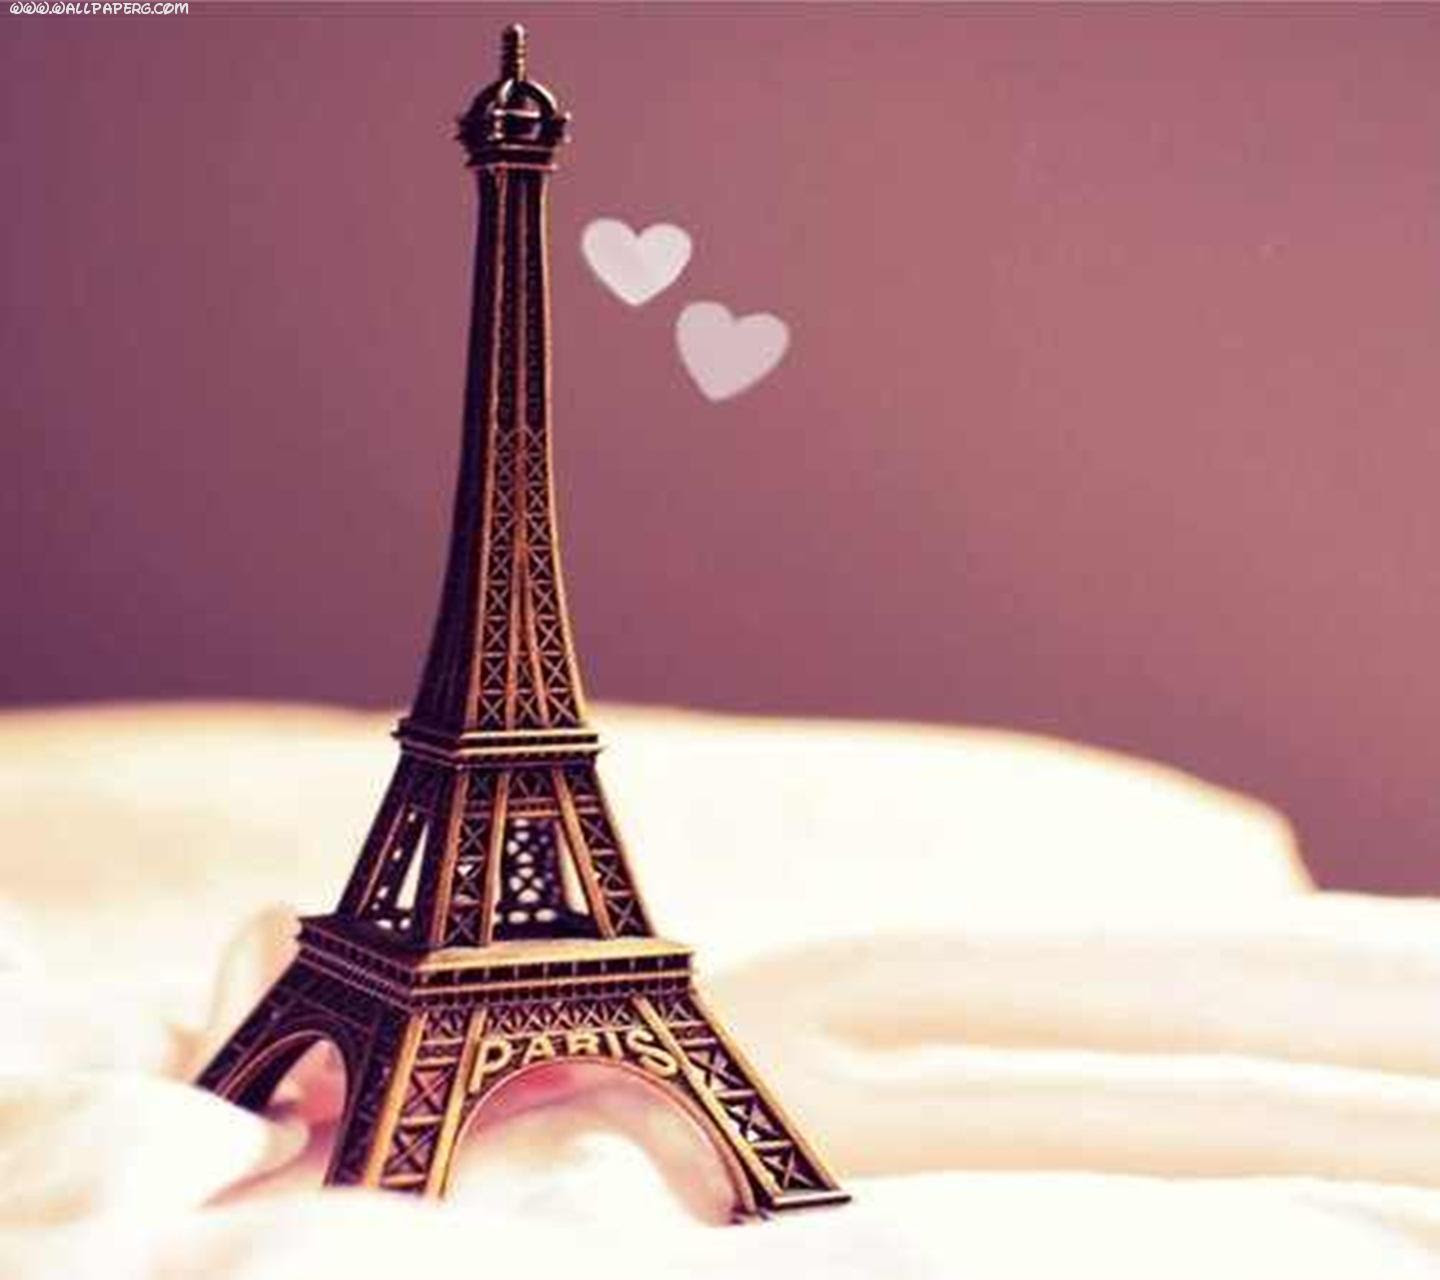 Download Cute Eiffel Tower Romantic Couple Wallpapers For Your Mobile Cell Phone